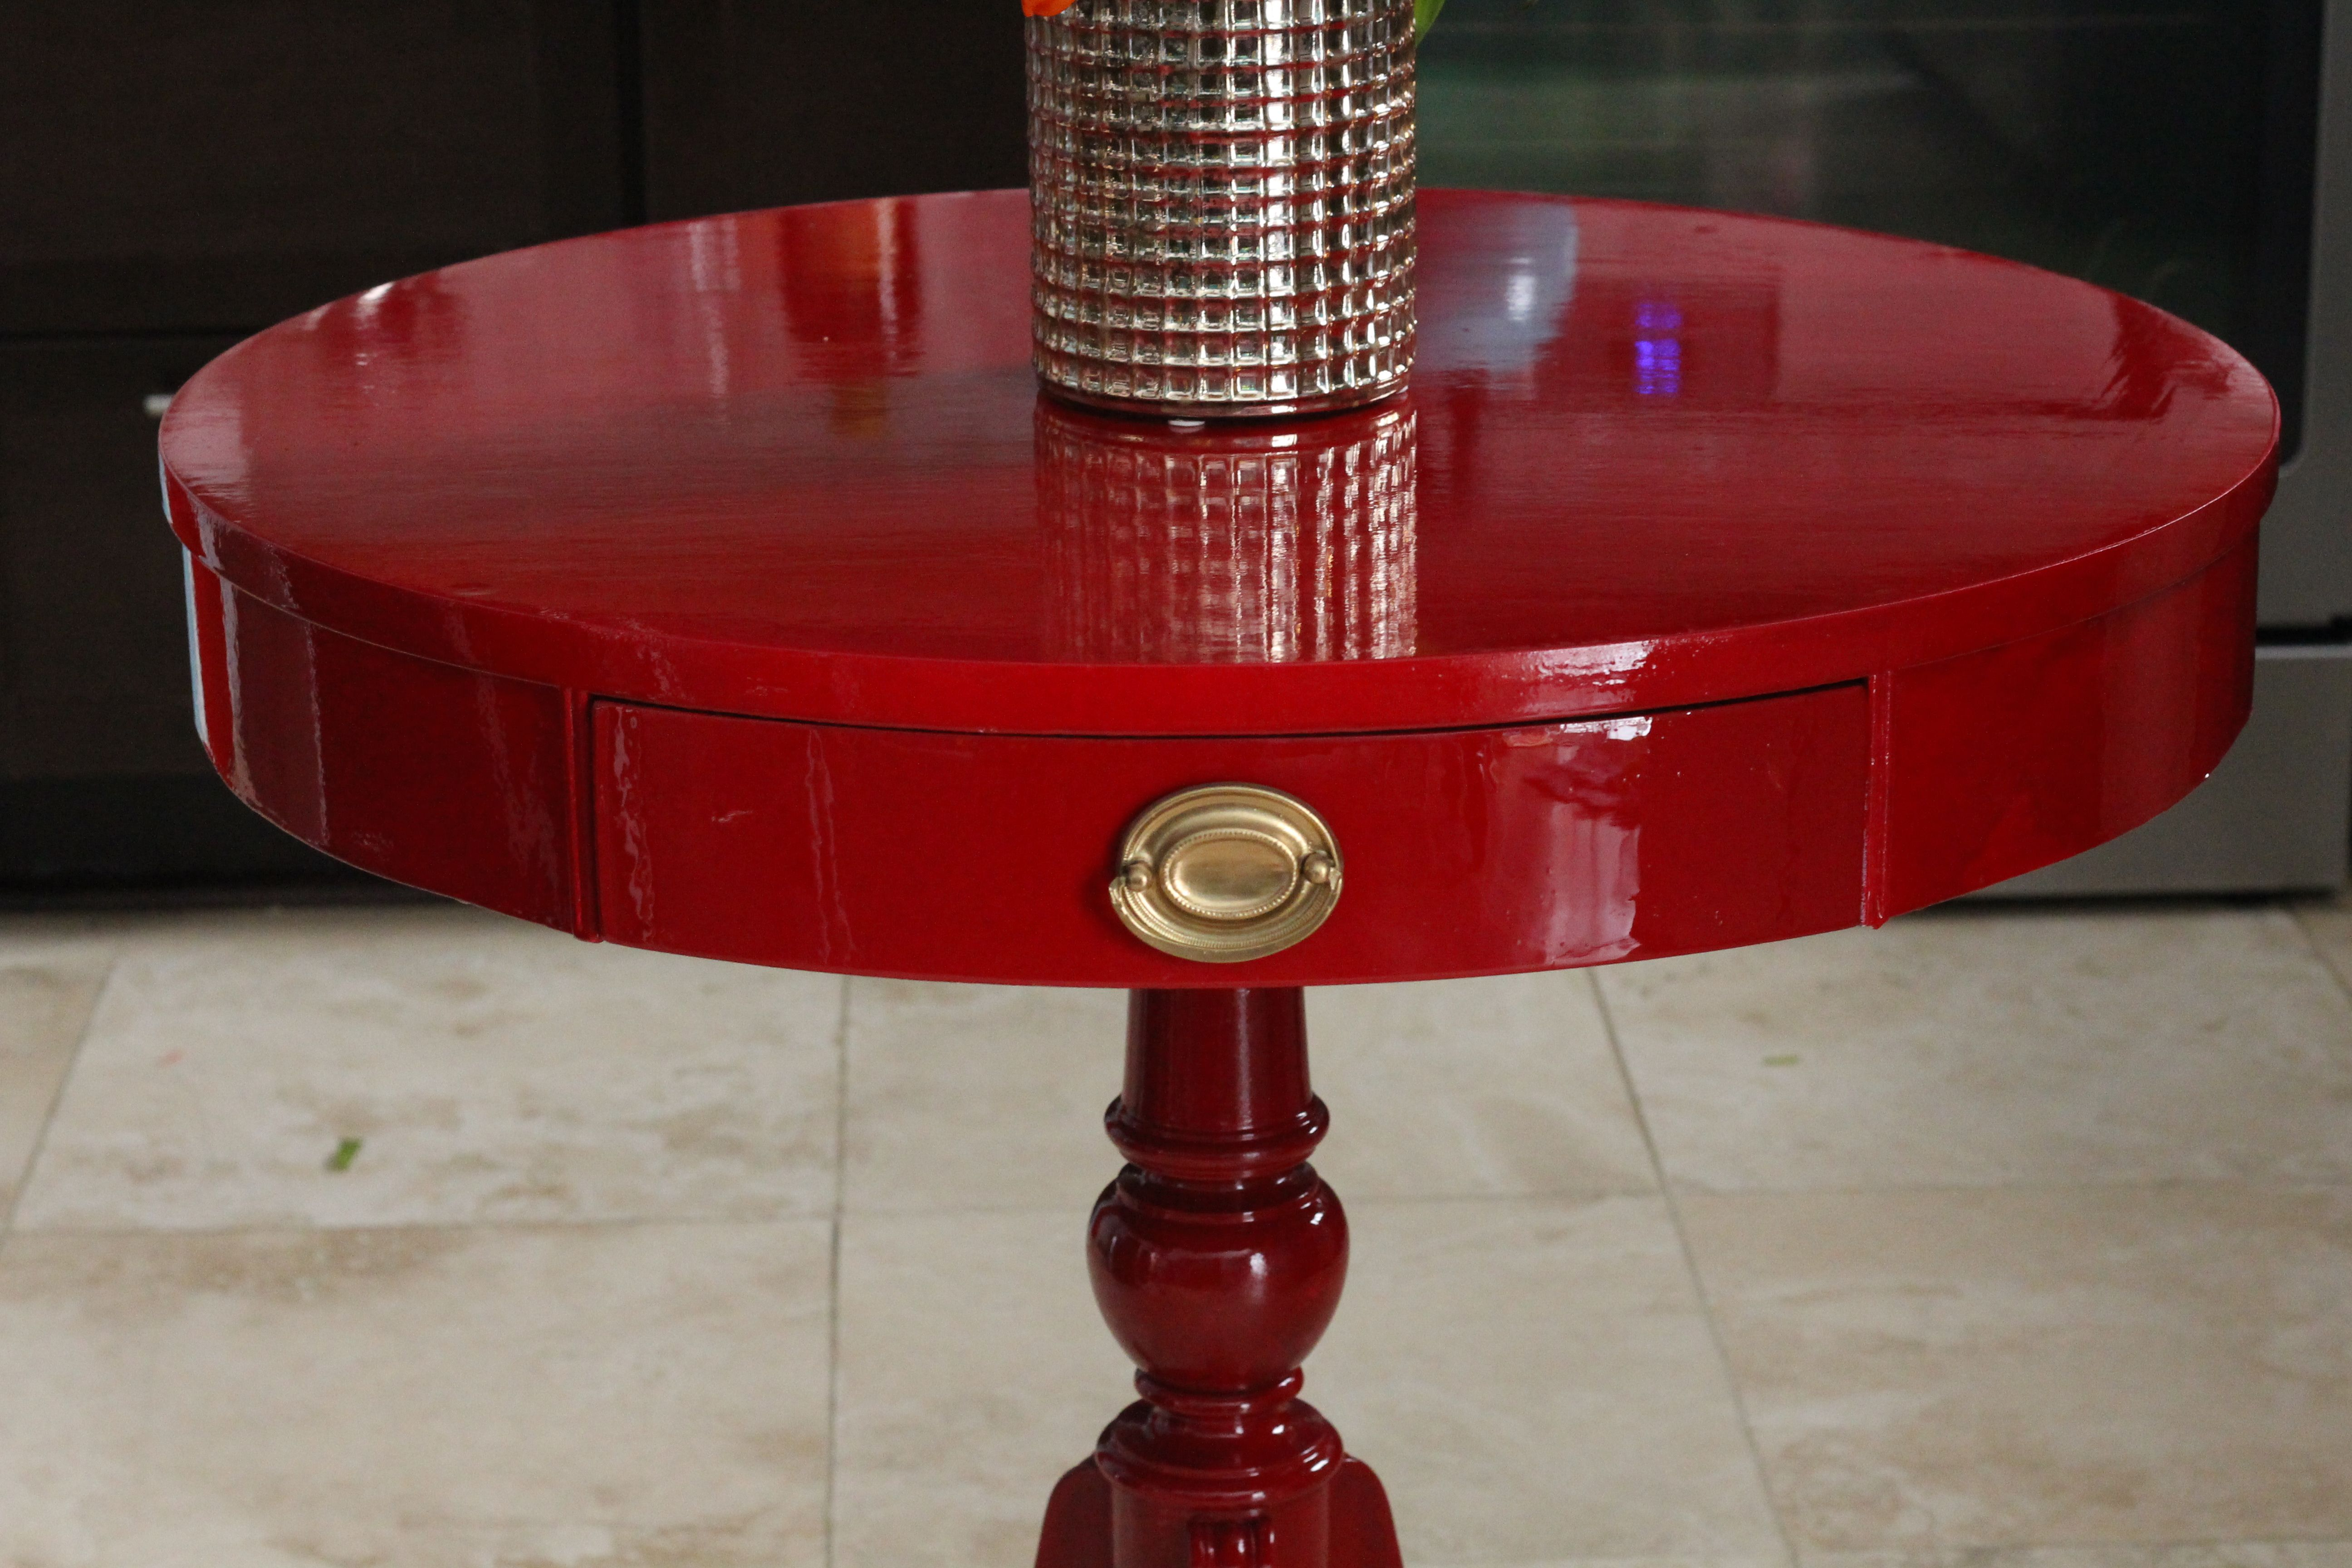 Refinished Vintage Duncan Phyfe Table With High Gloss Red Fine Paints Of Europe S Rembrandt